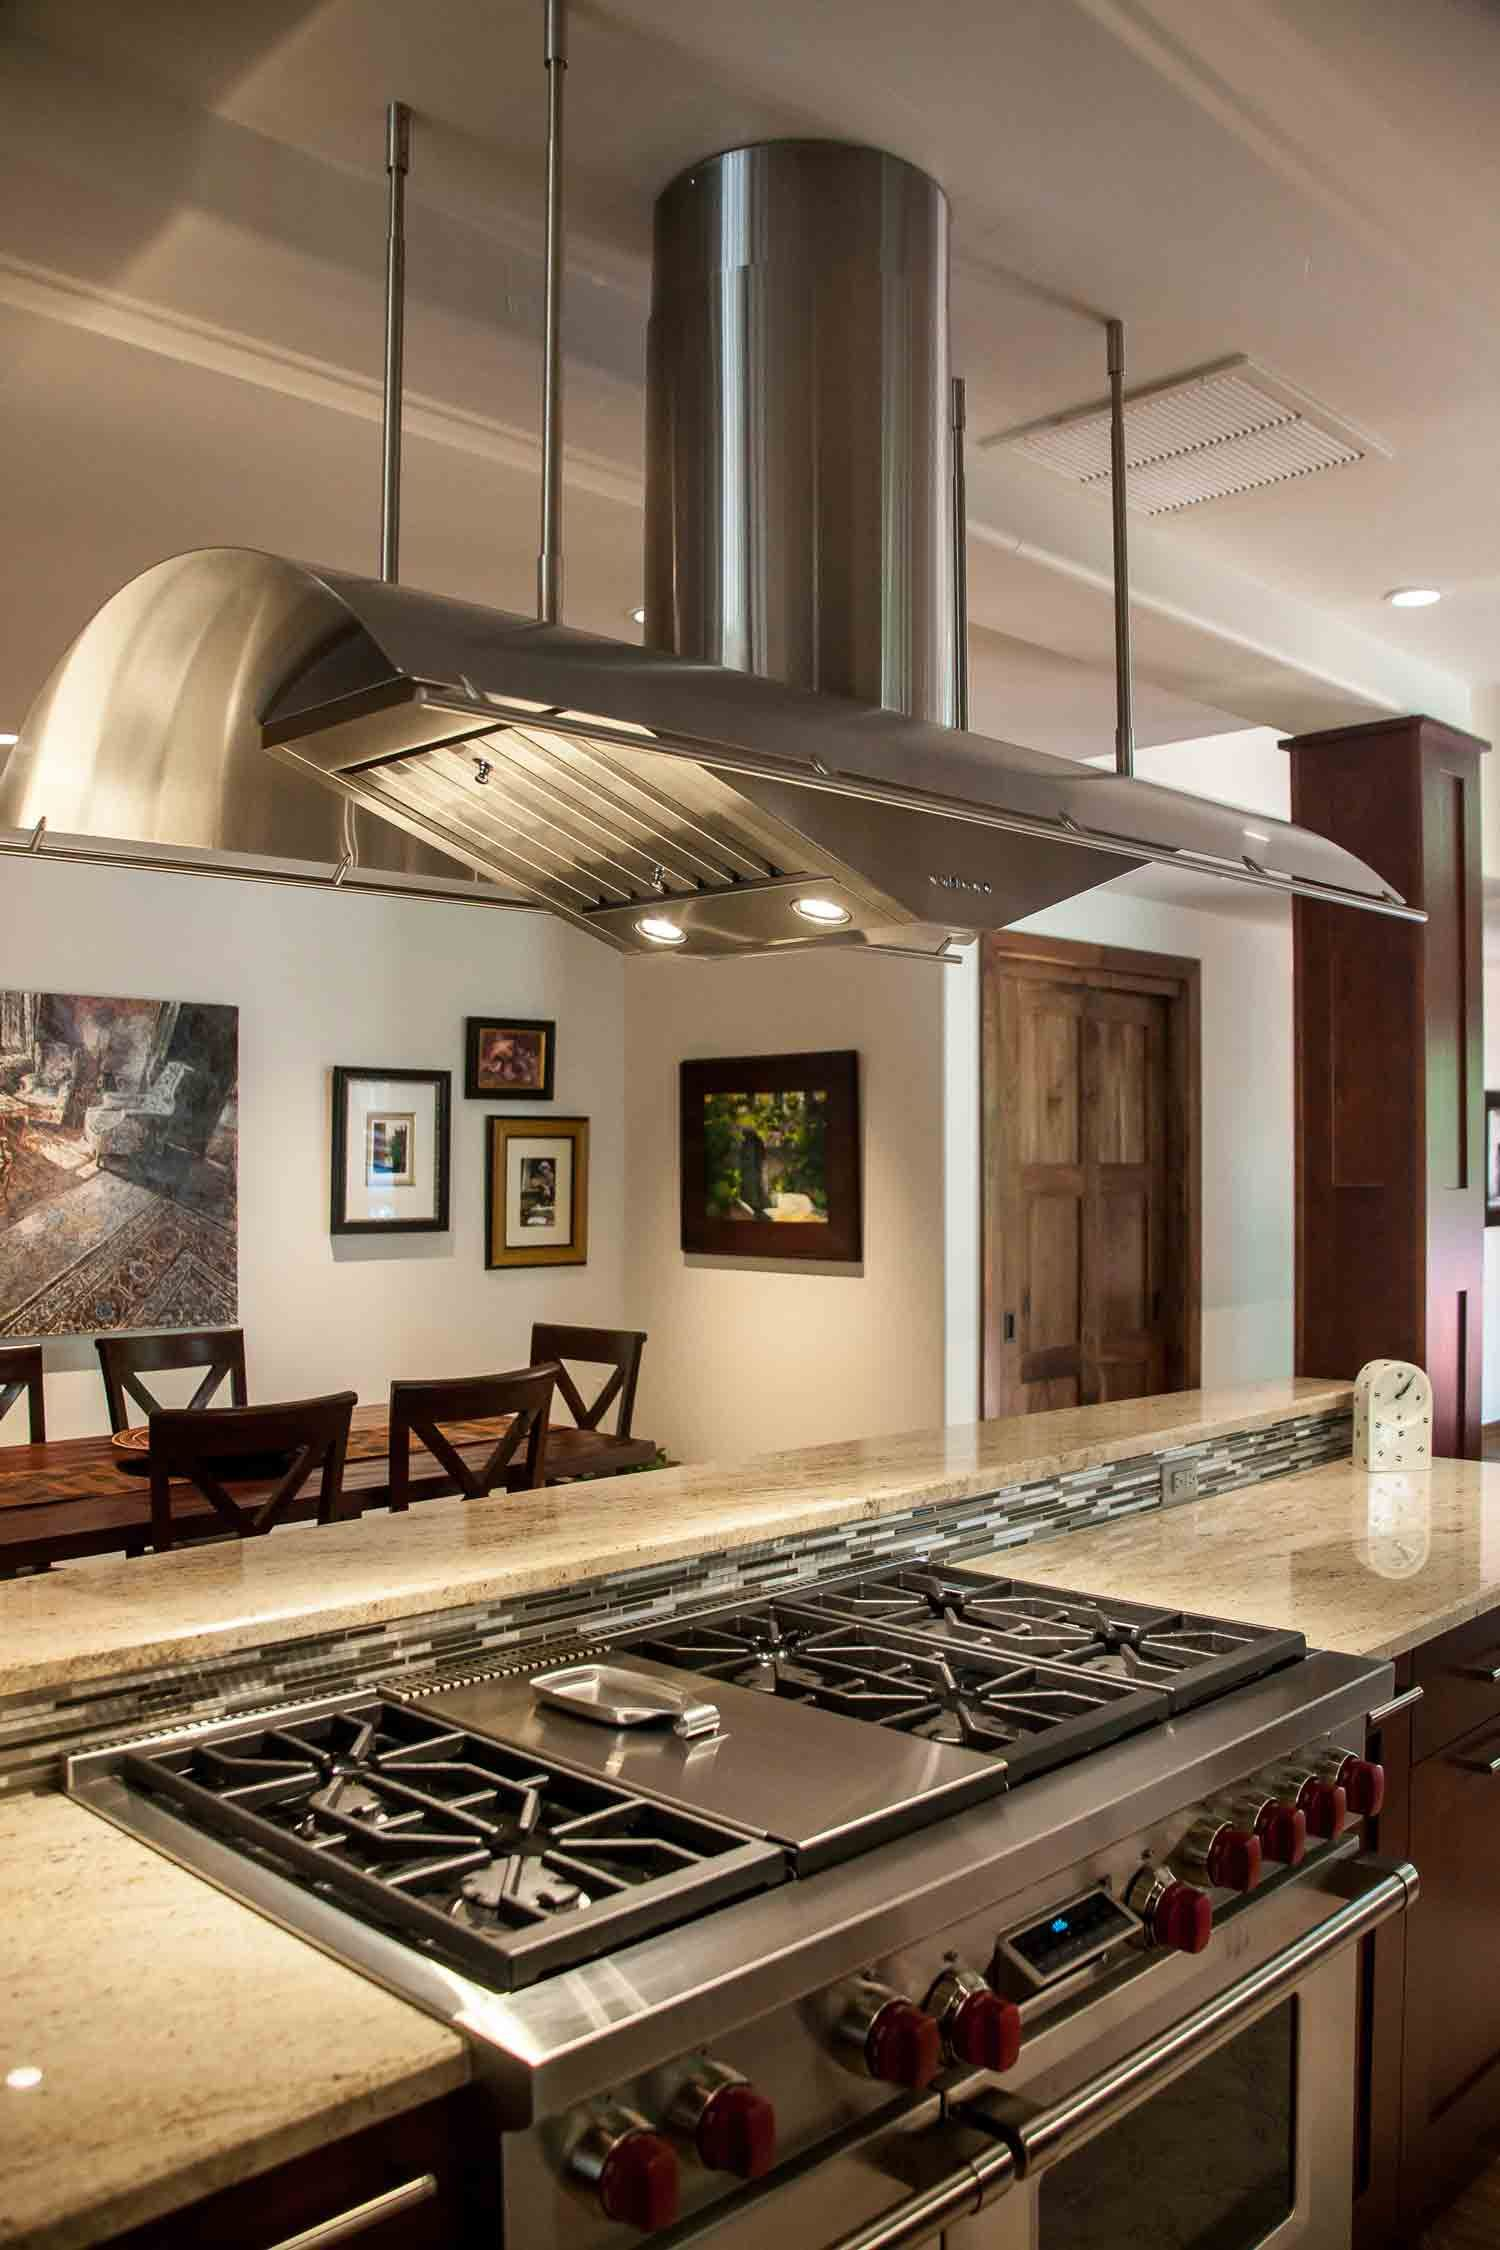 Gorgeous Stainless Steel Stove Hood Over Center Island 6